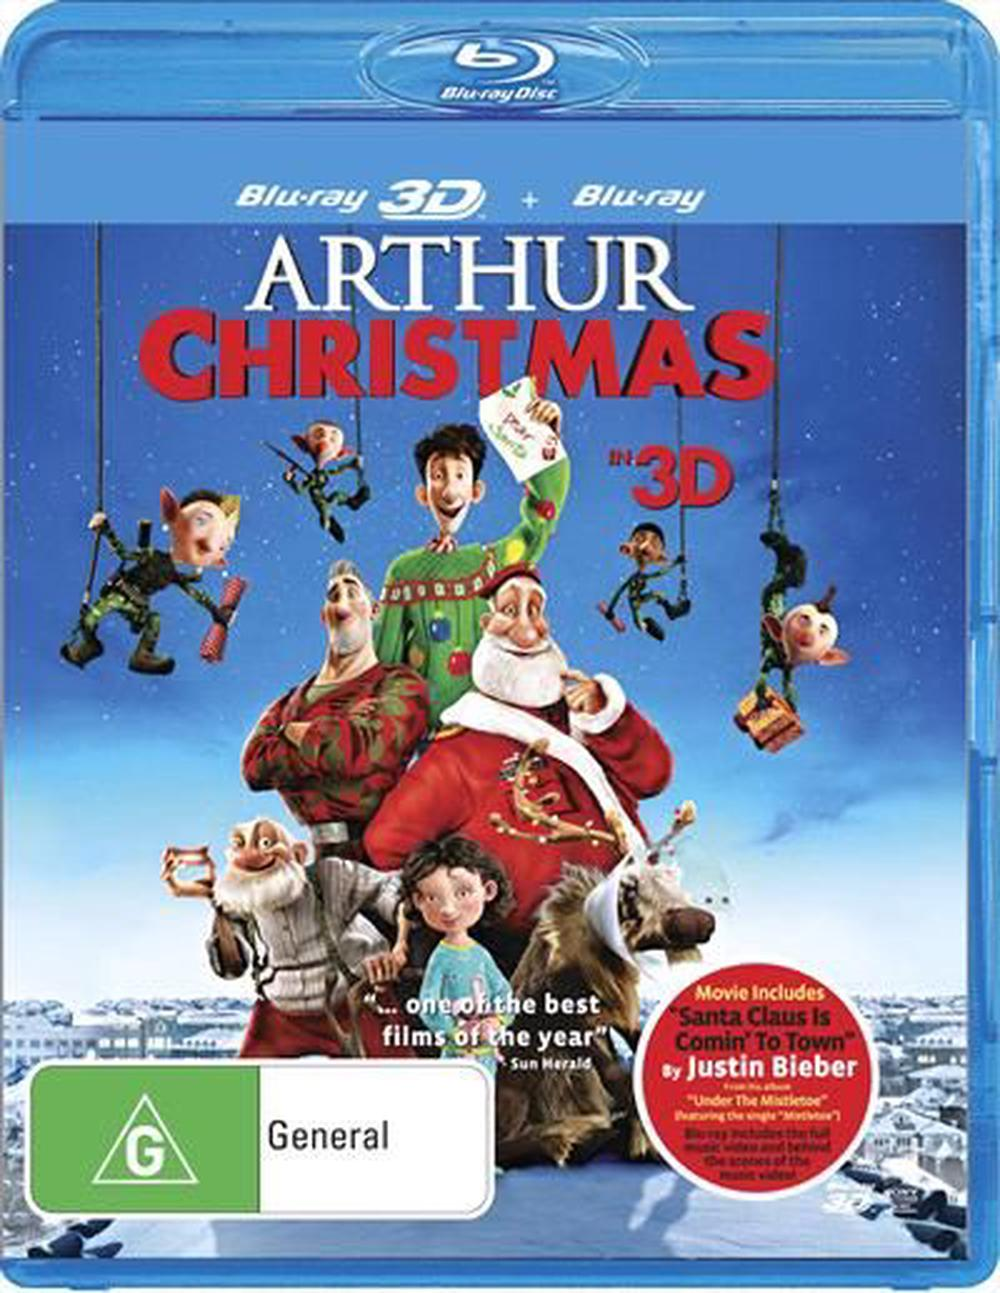 arthur christmas 3d 2d blu ray - Arthur Christmas Full Movie Online